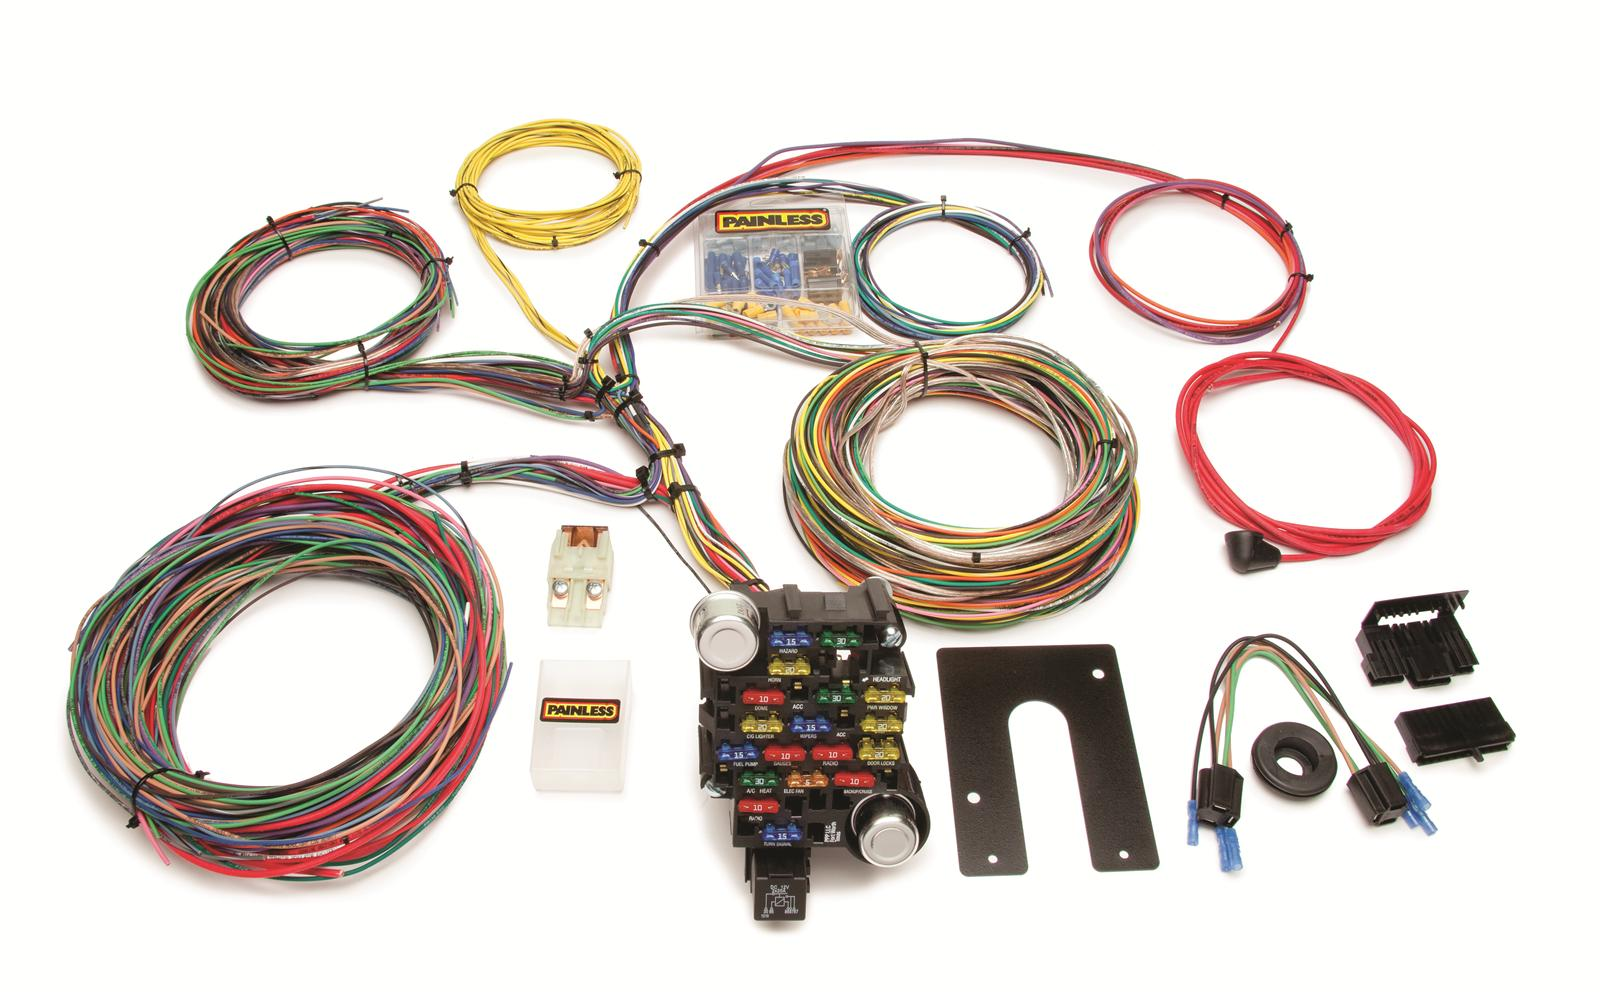 Painless Performance 28 Circuit Universal Harnesses 10202 Free 1979 Excalibur Wiring Diagram Shipping On Orders Over 49 At Summit Racing